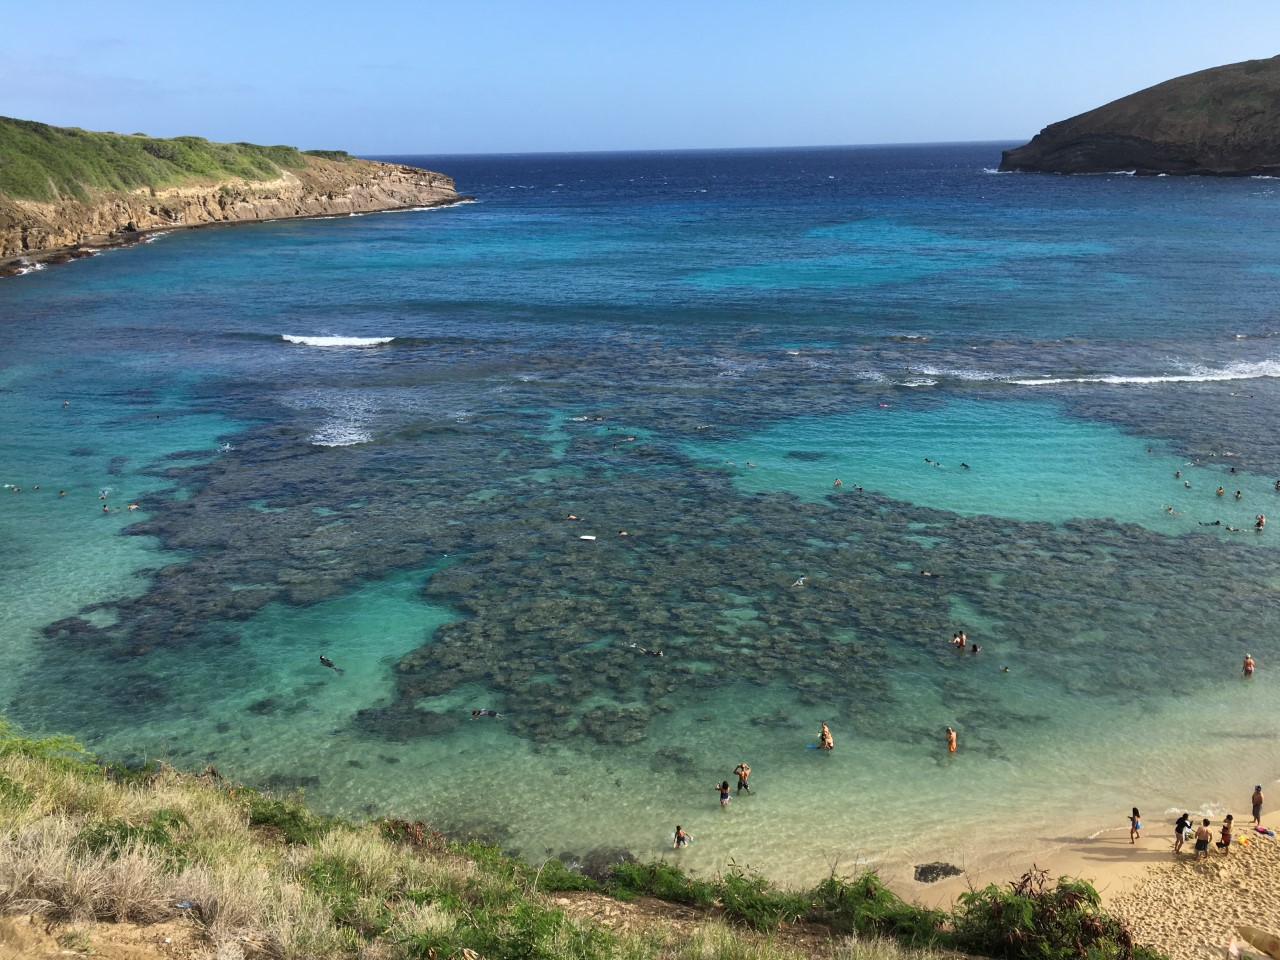 Snorkeling with the Masses at Hanauma Bay – Inger Hultgren Meyer